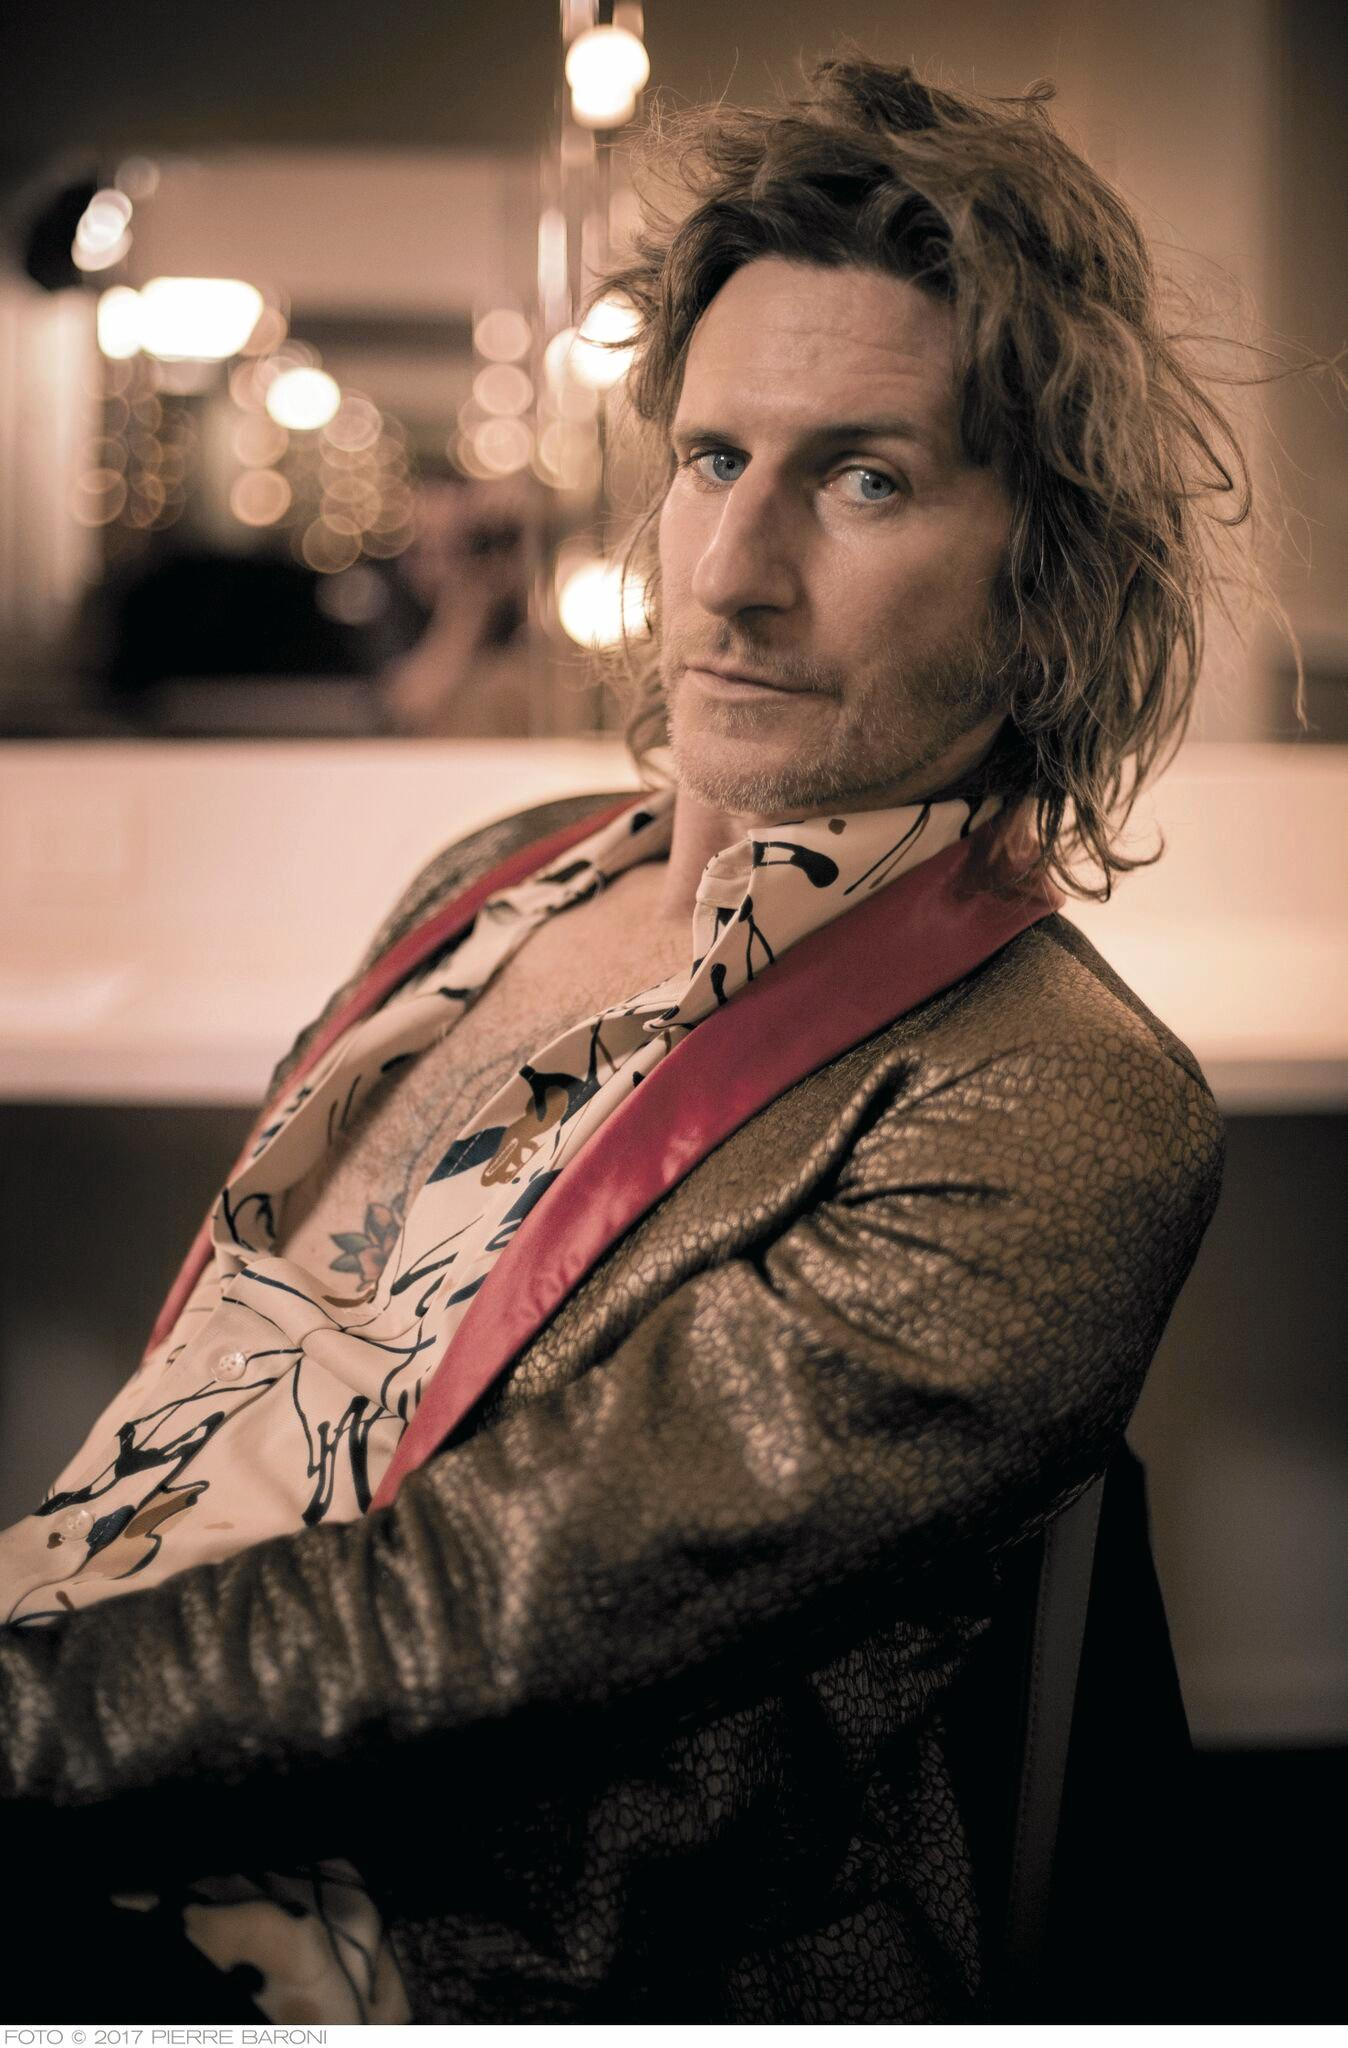 Tim Rogers is an Australian musician, actor and writer; best known as the frontman of Australian rock band You Am I, he has also recorded solo albums with backing bands.